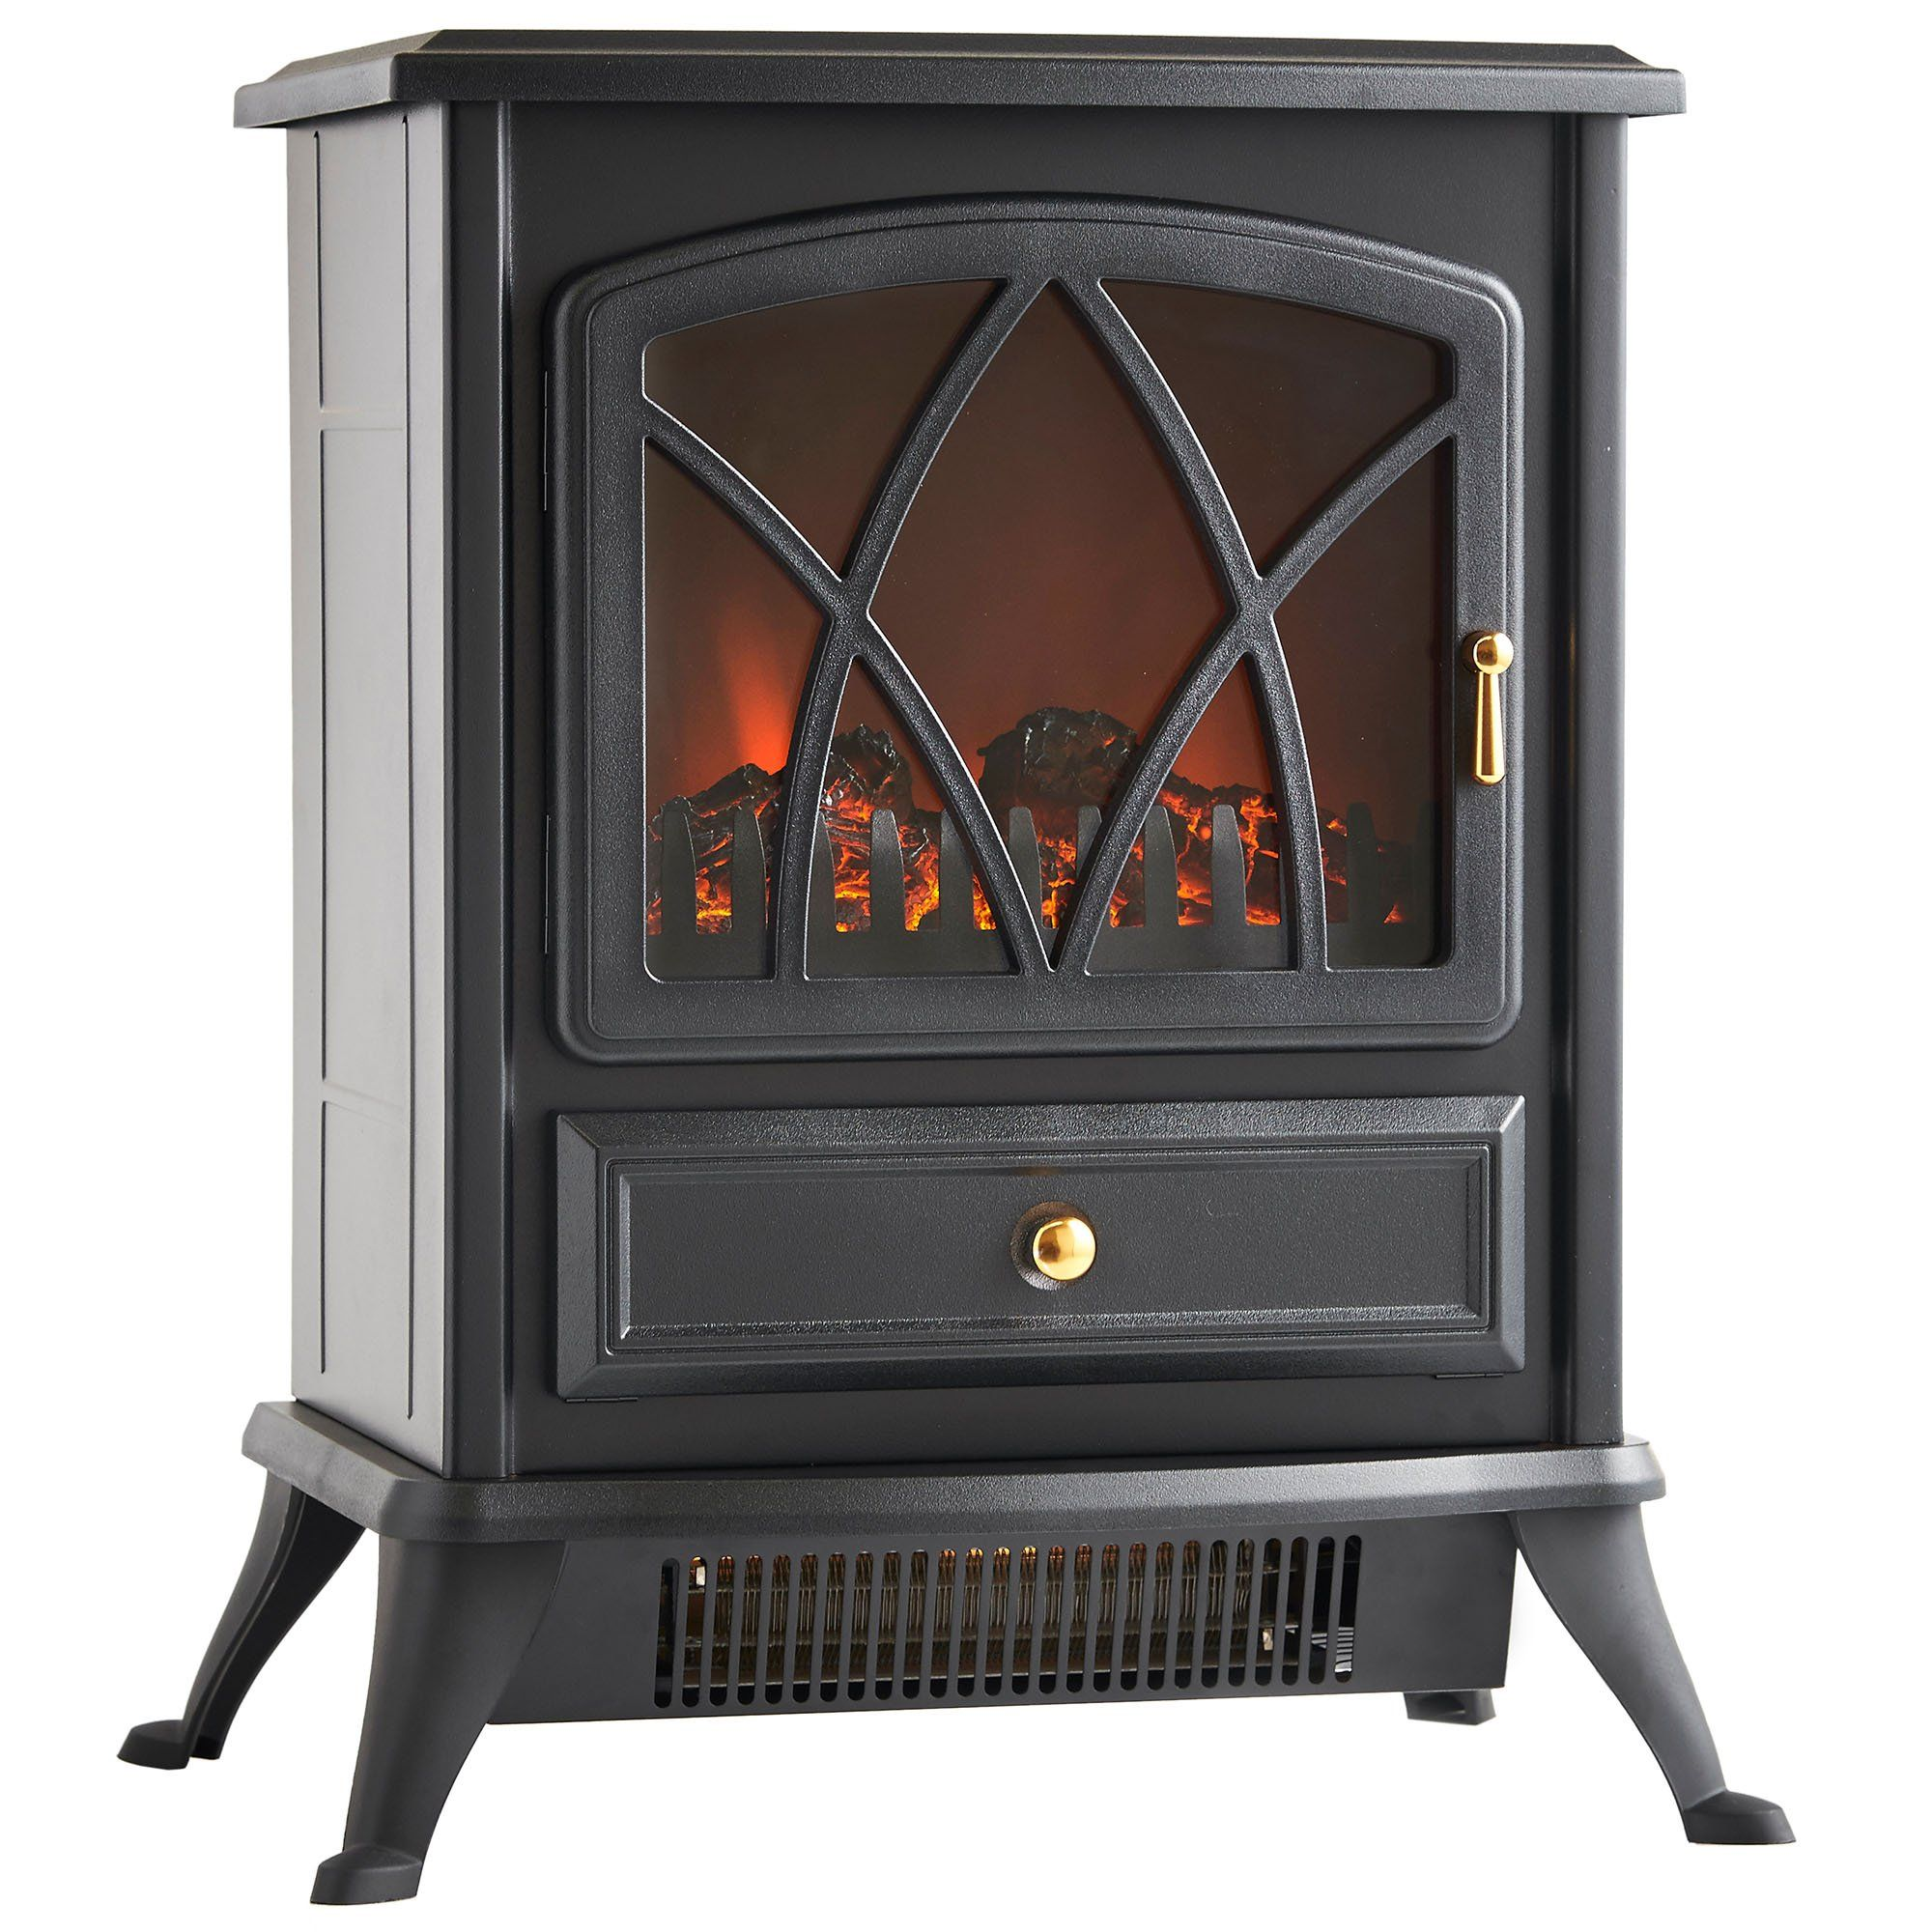 VonHaus W Electric Stove Heater Portable Home Fireplace with